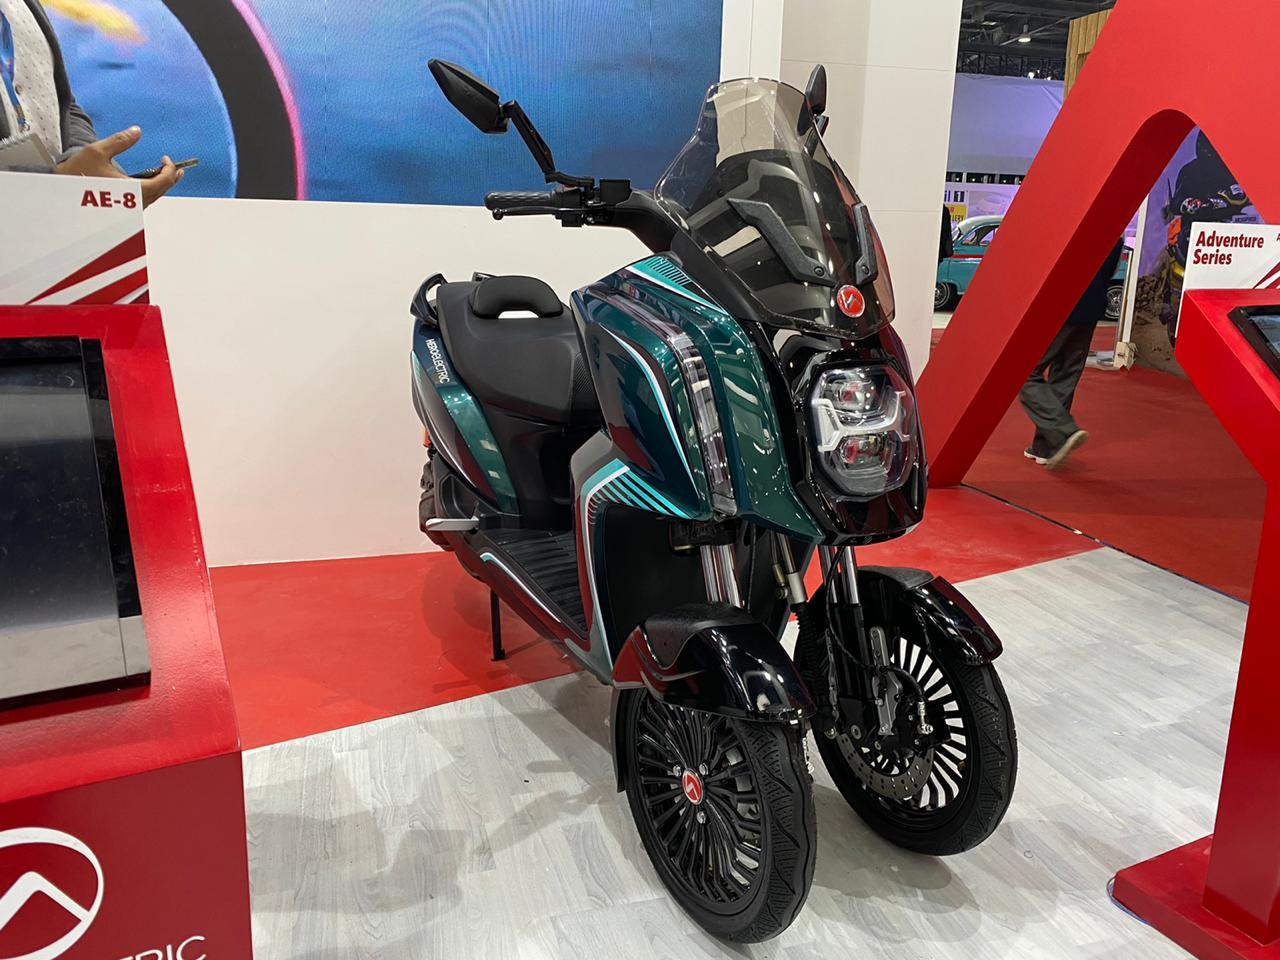 Hero AE-3 Electric Scooter: Image Gallery